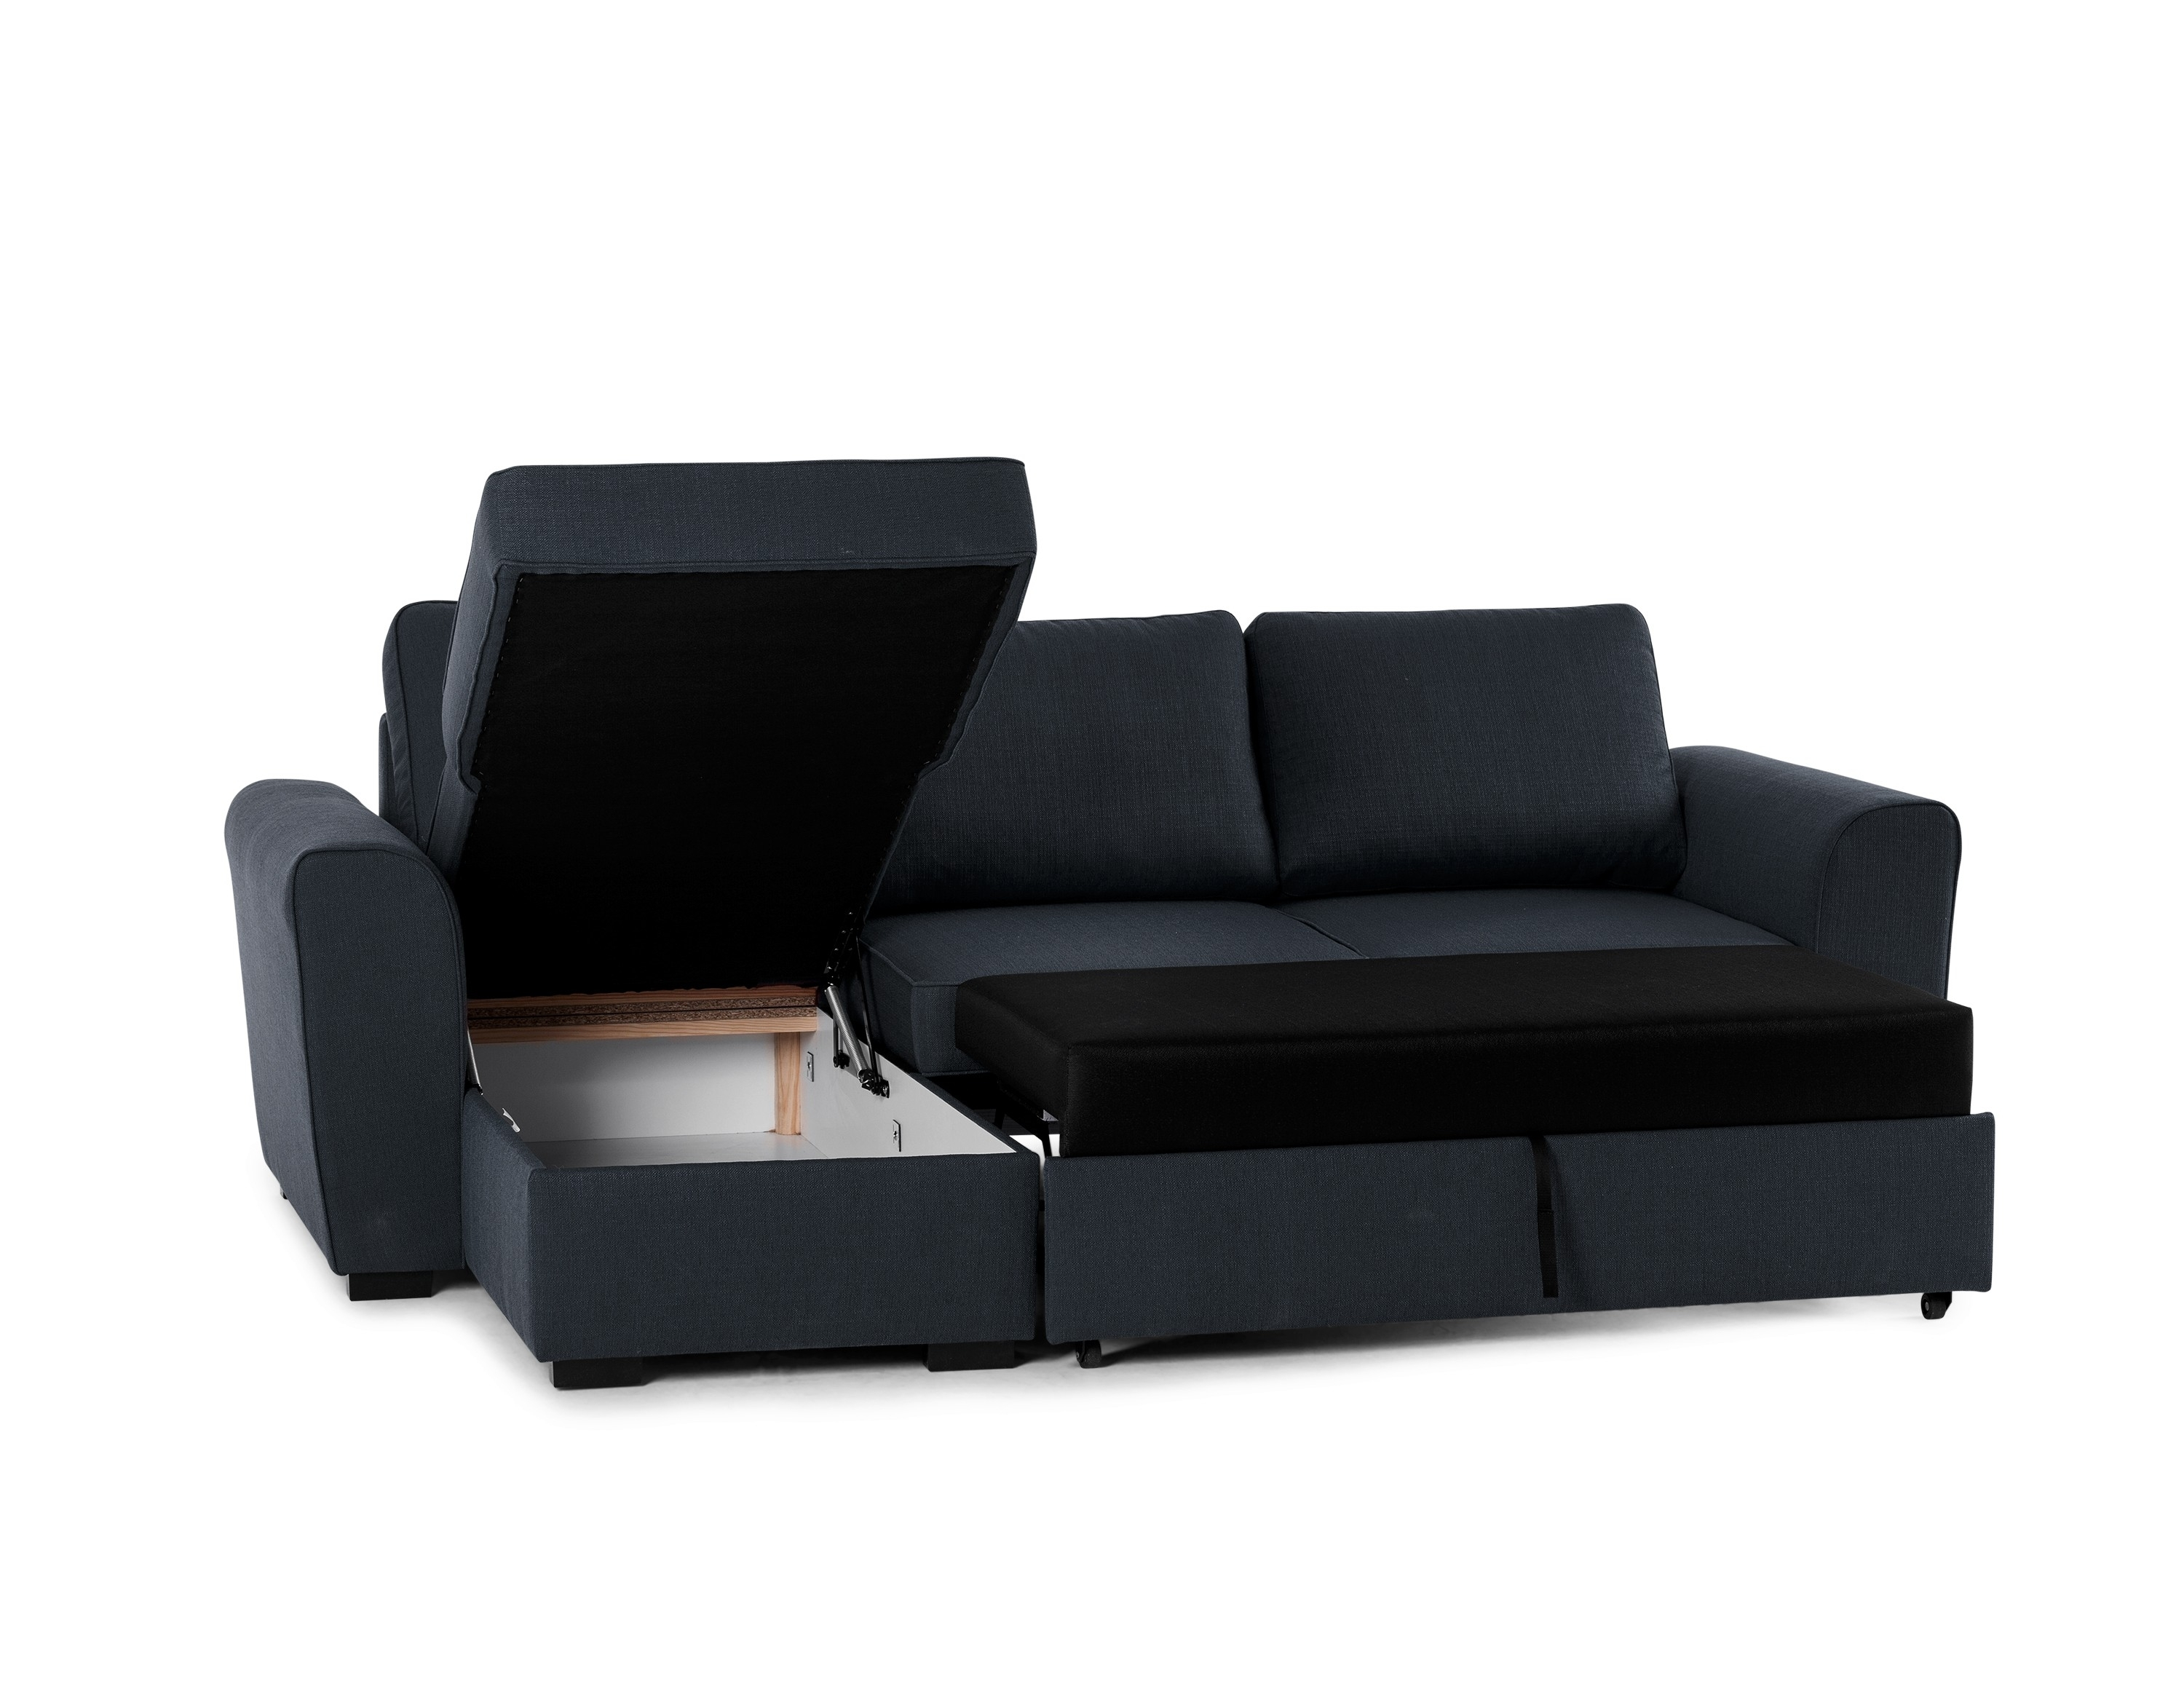 Sofa : Stunning Sectional Sofa Bed Apk 27801 2S 10X8 Cropafhs Pdp Pertaining To 10X8 Sectional Sofas (View 8 of 10)